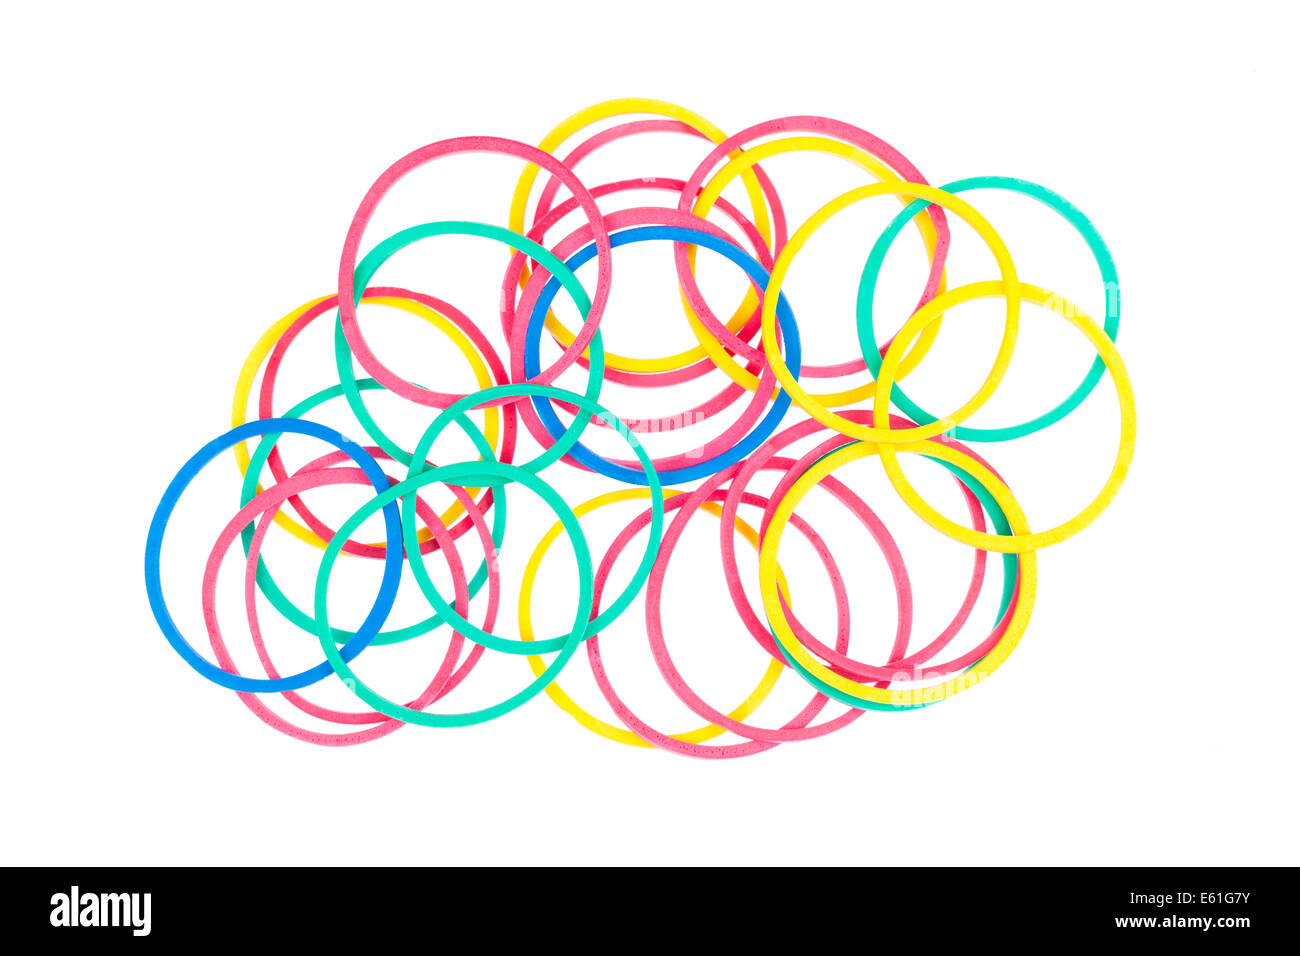 Colourful elastic bands on a white background. - Stock Image